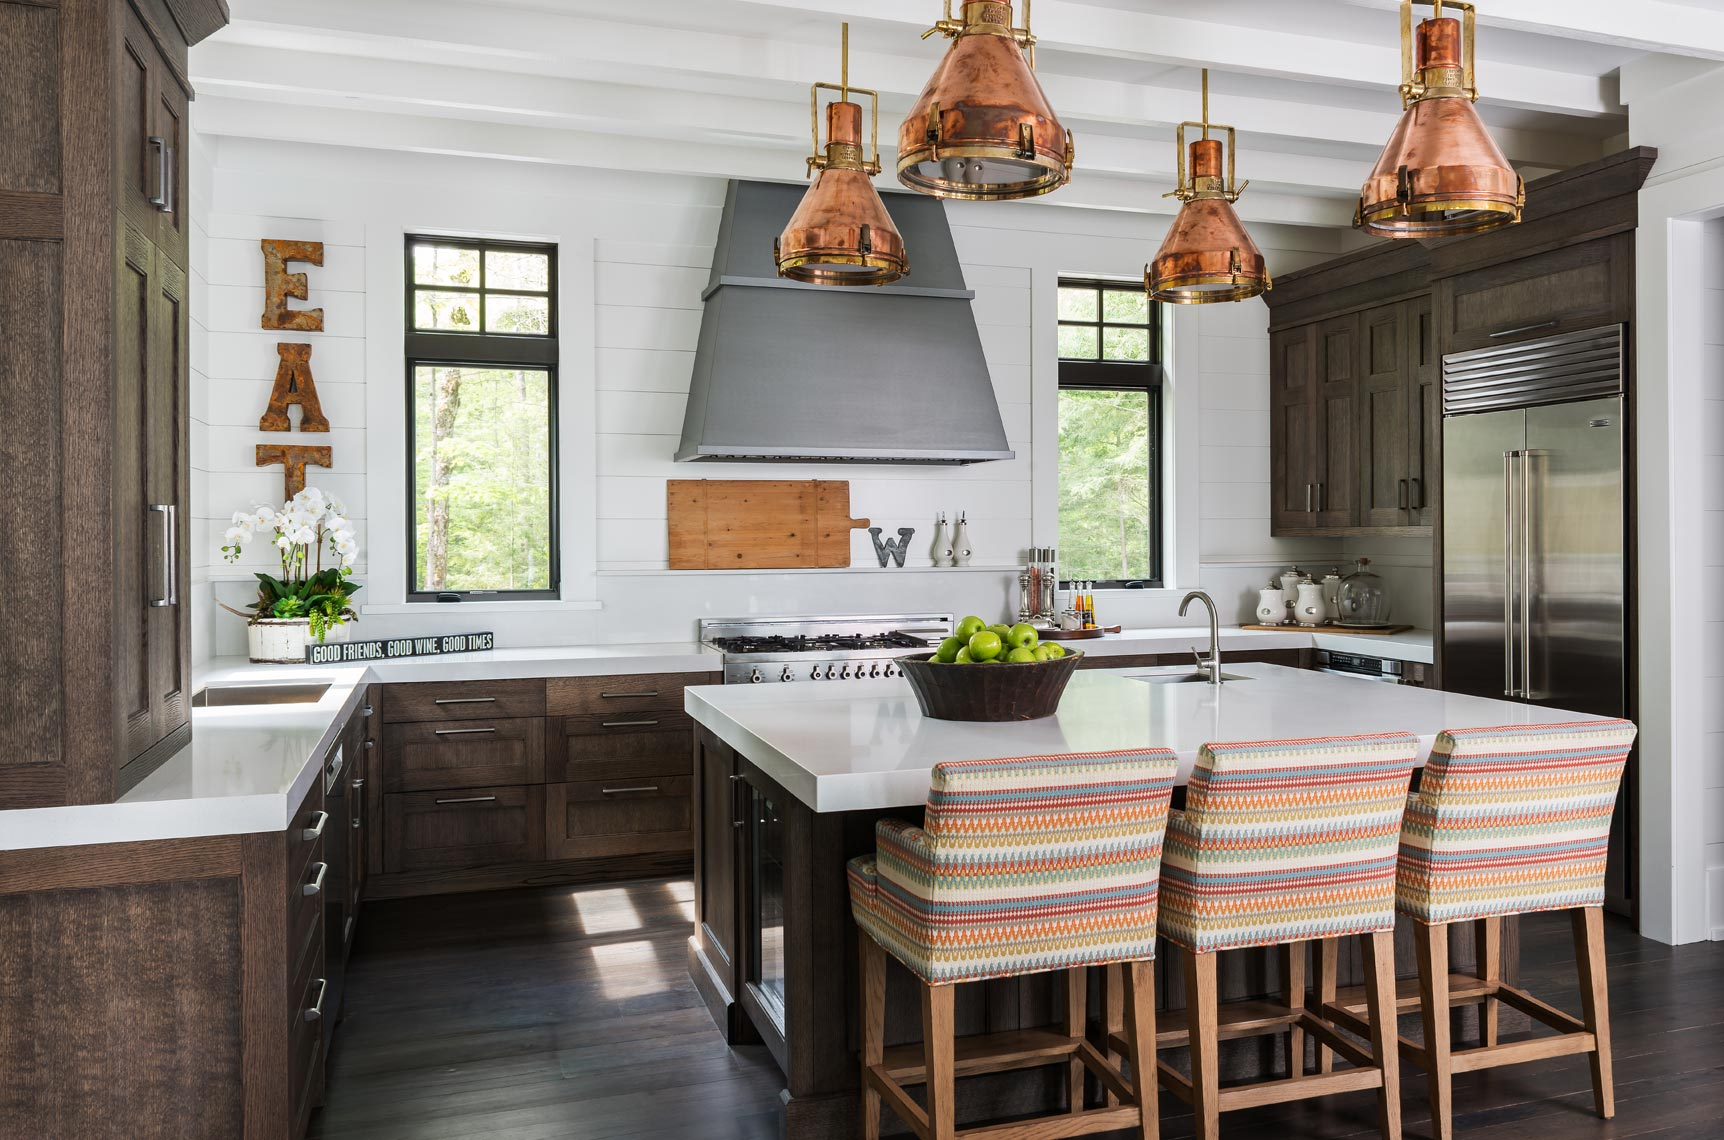 Muskoka Cottage kitchen - Tuvalu Home